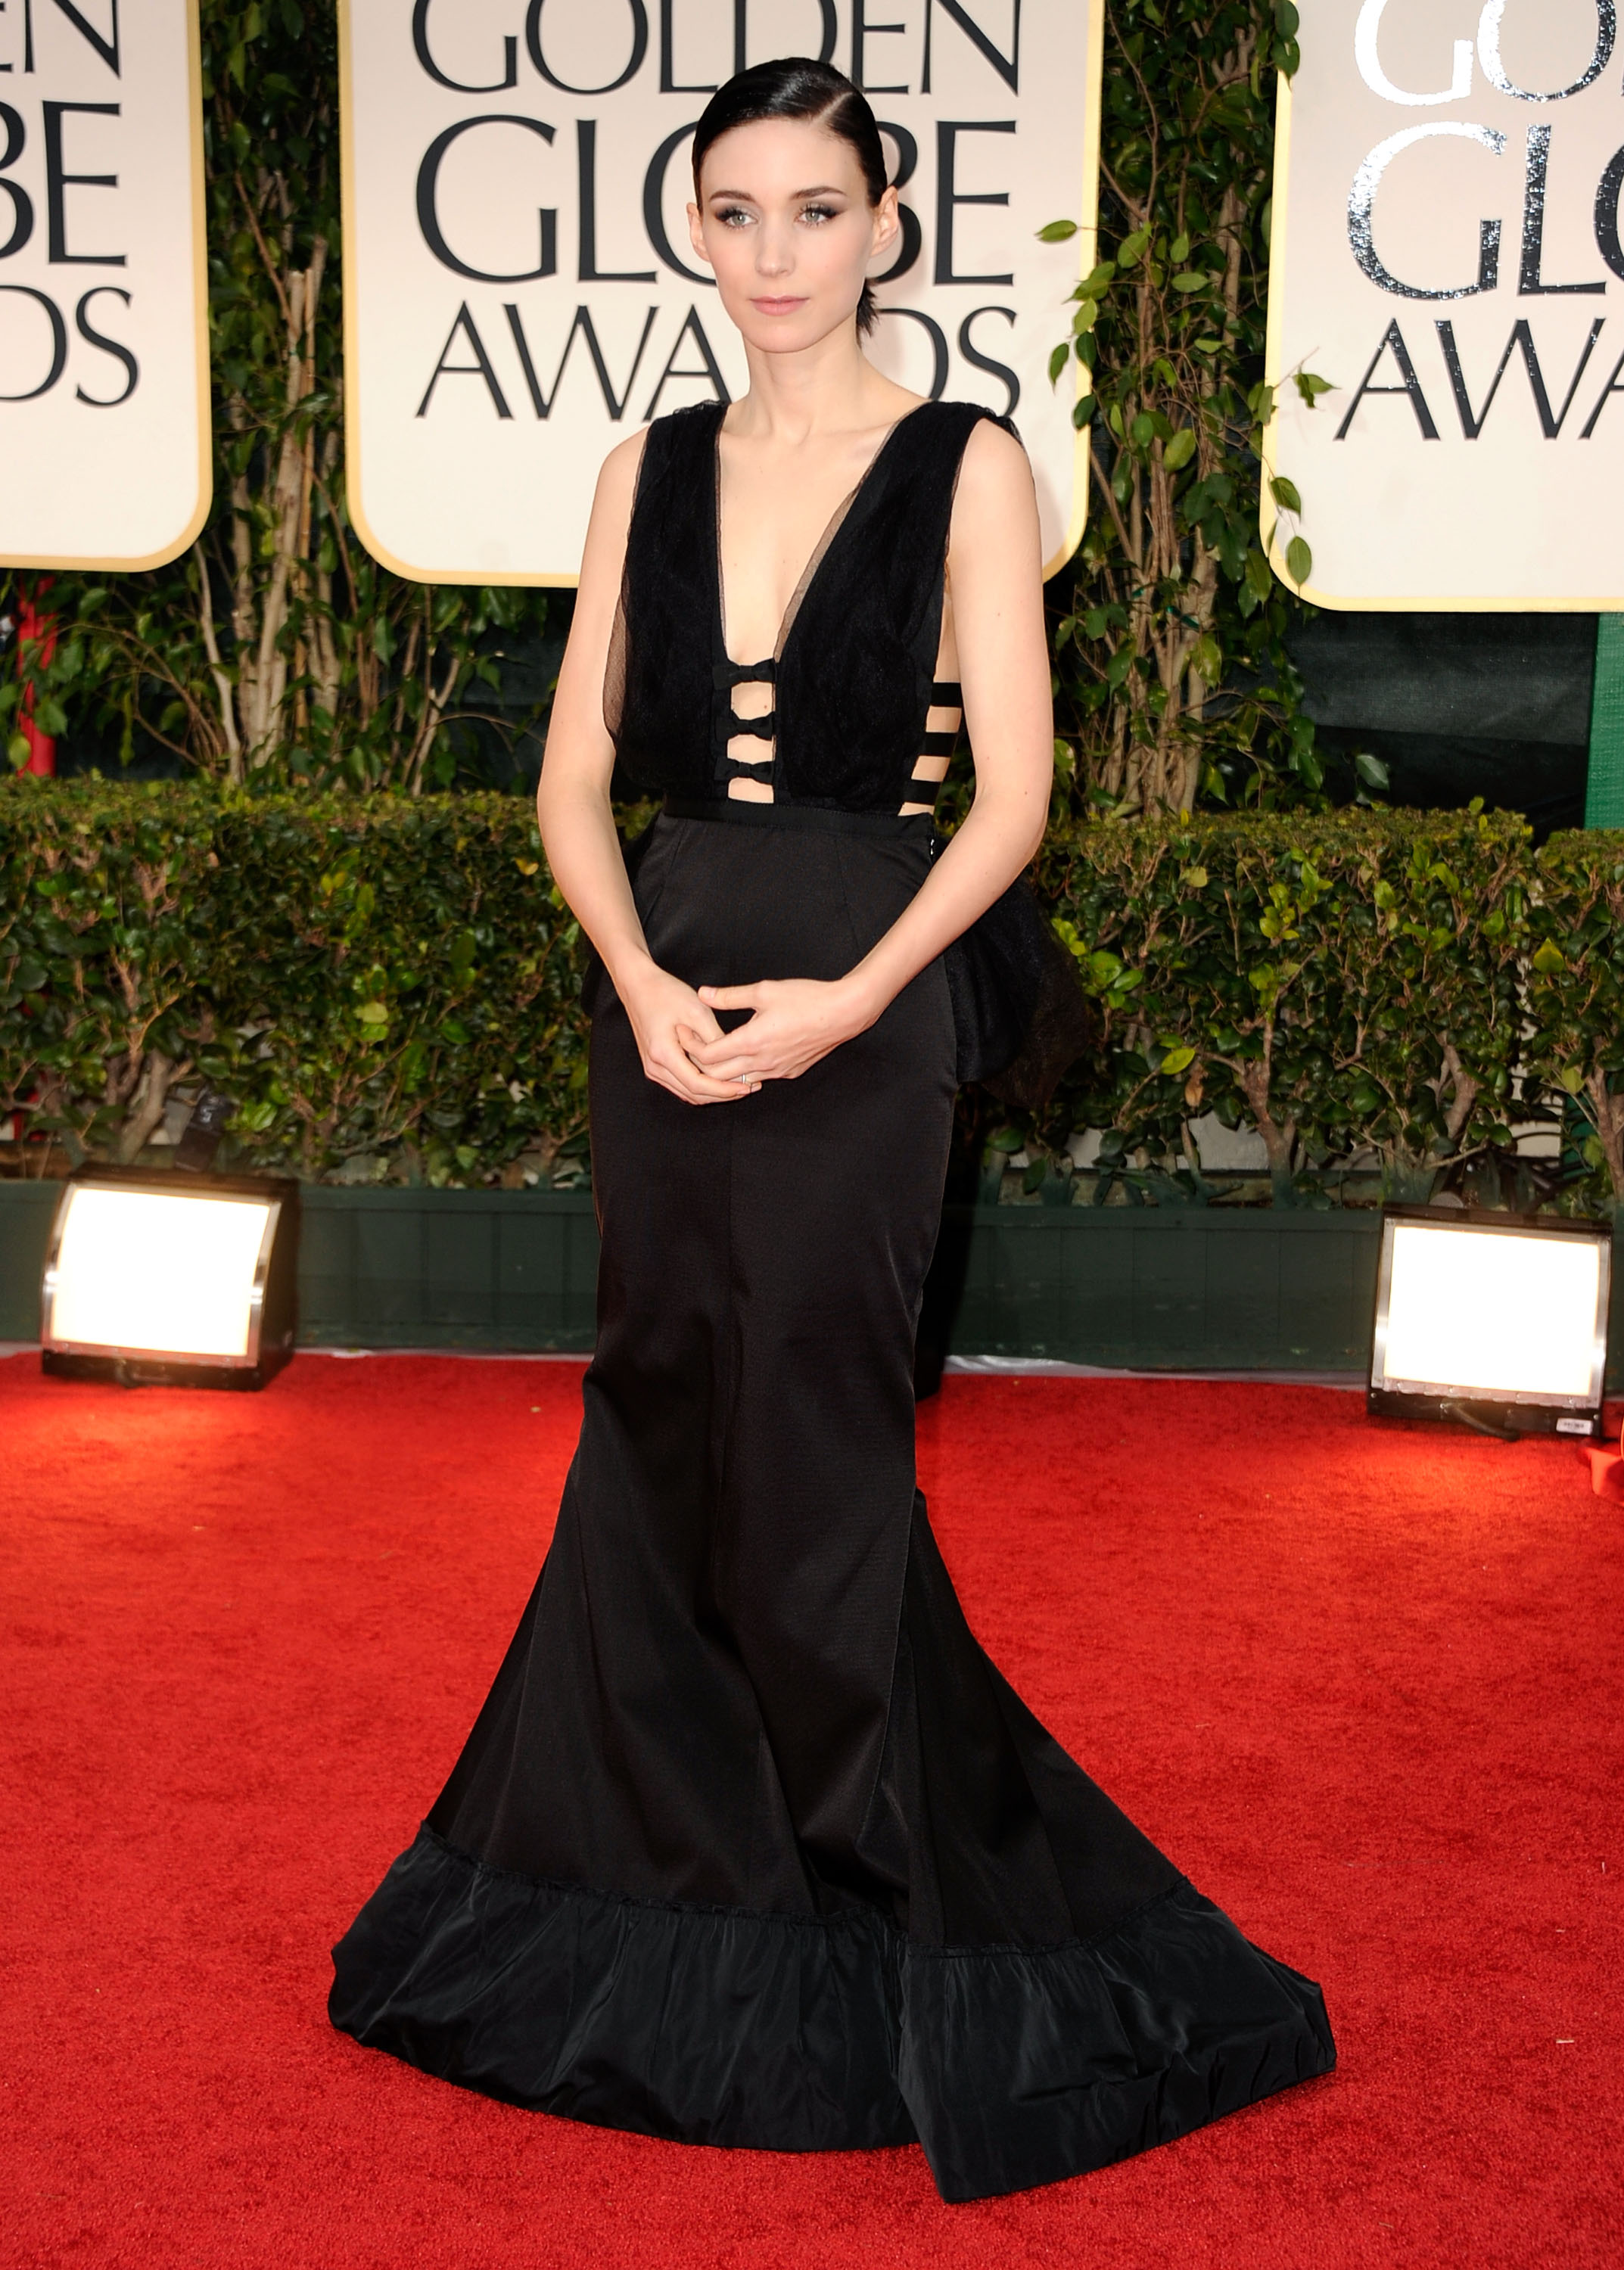 Rooney Mara at the Golden Globes.